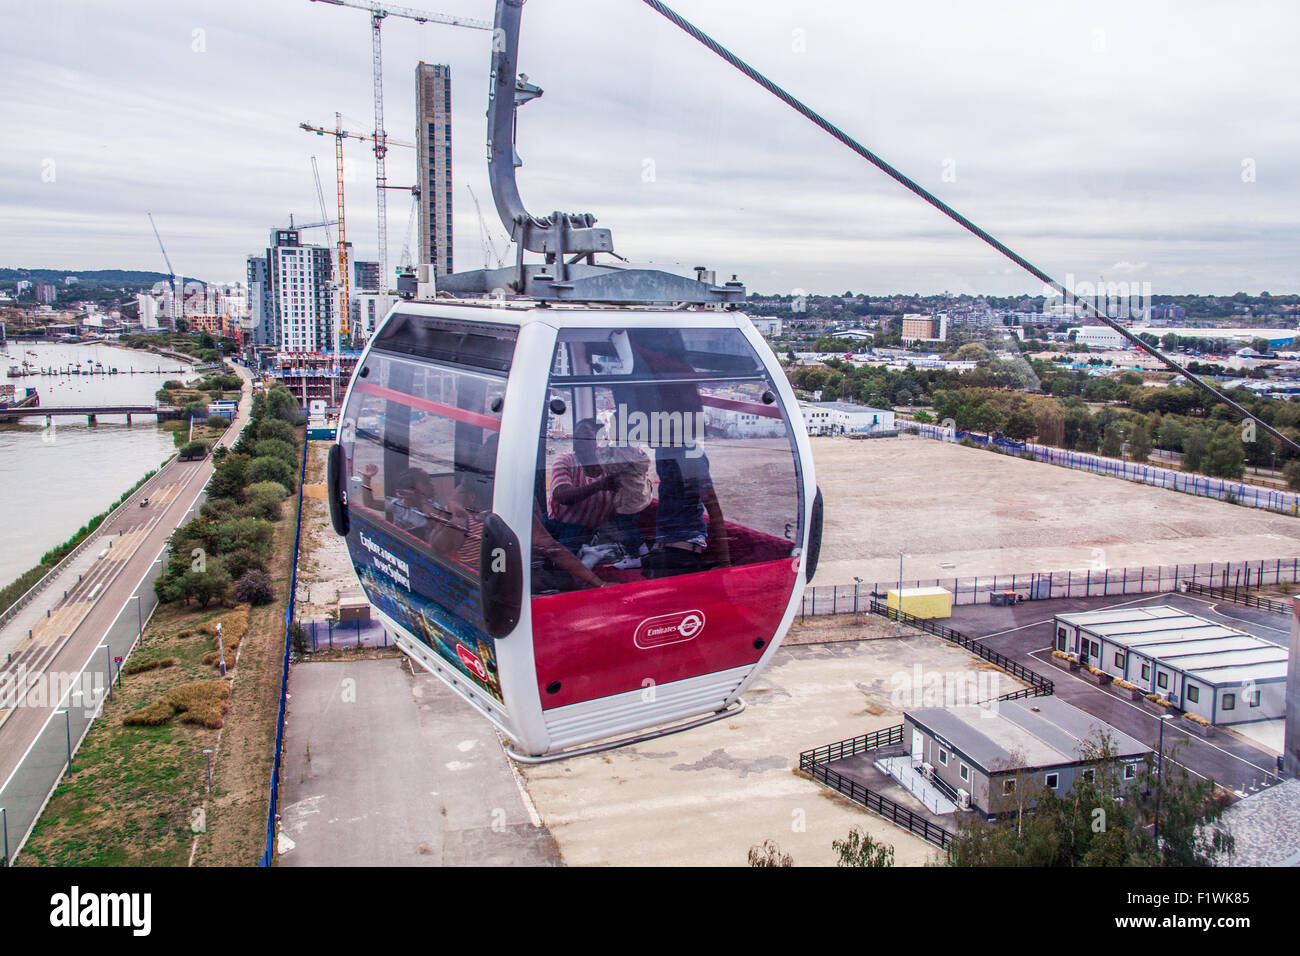 Emirates Air Line cable car crossing the River Thames from North Greenwich to Royal Victoria Dock, London, England, Stock Photo